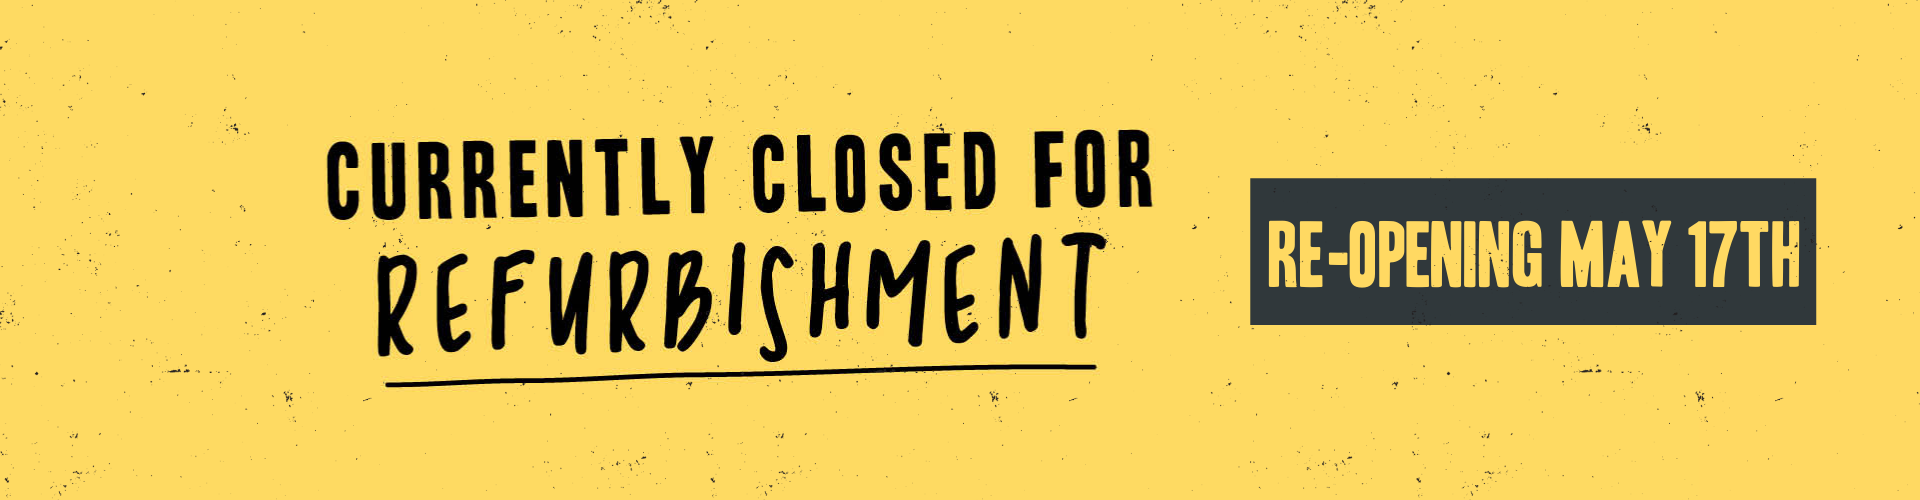 We are now closed for refurbishment and will re-open on May 17th